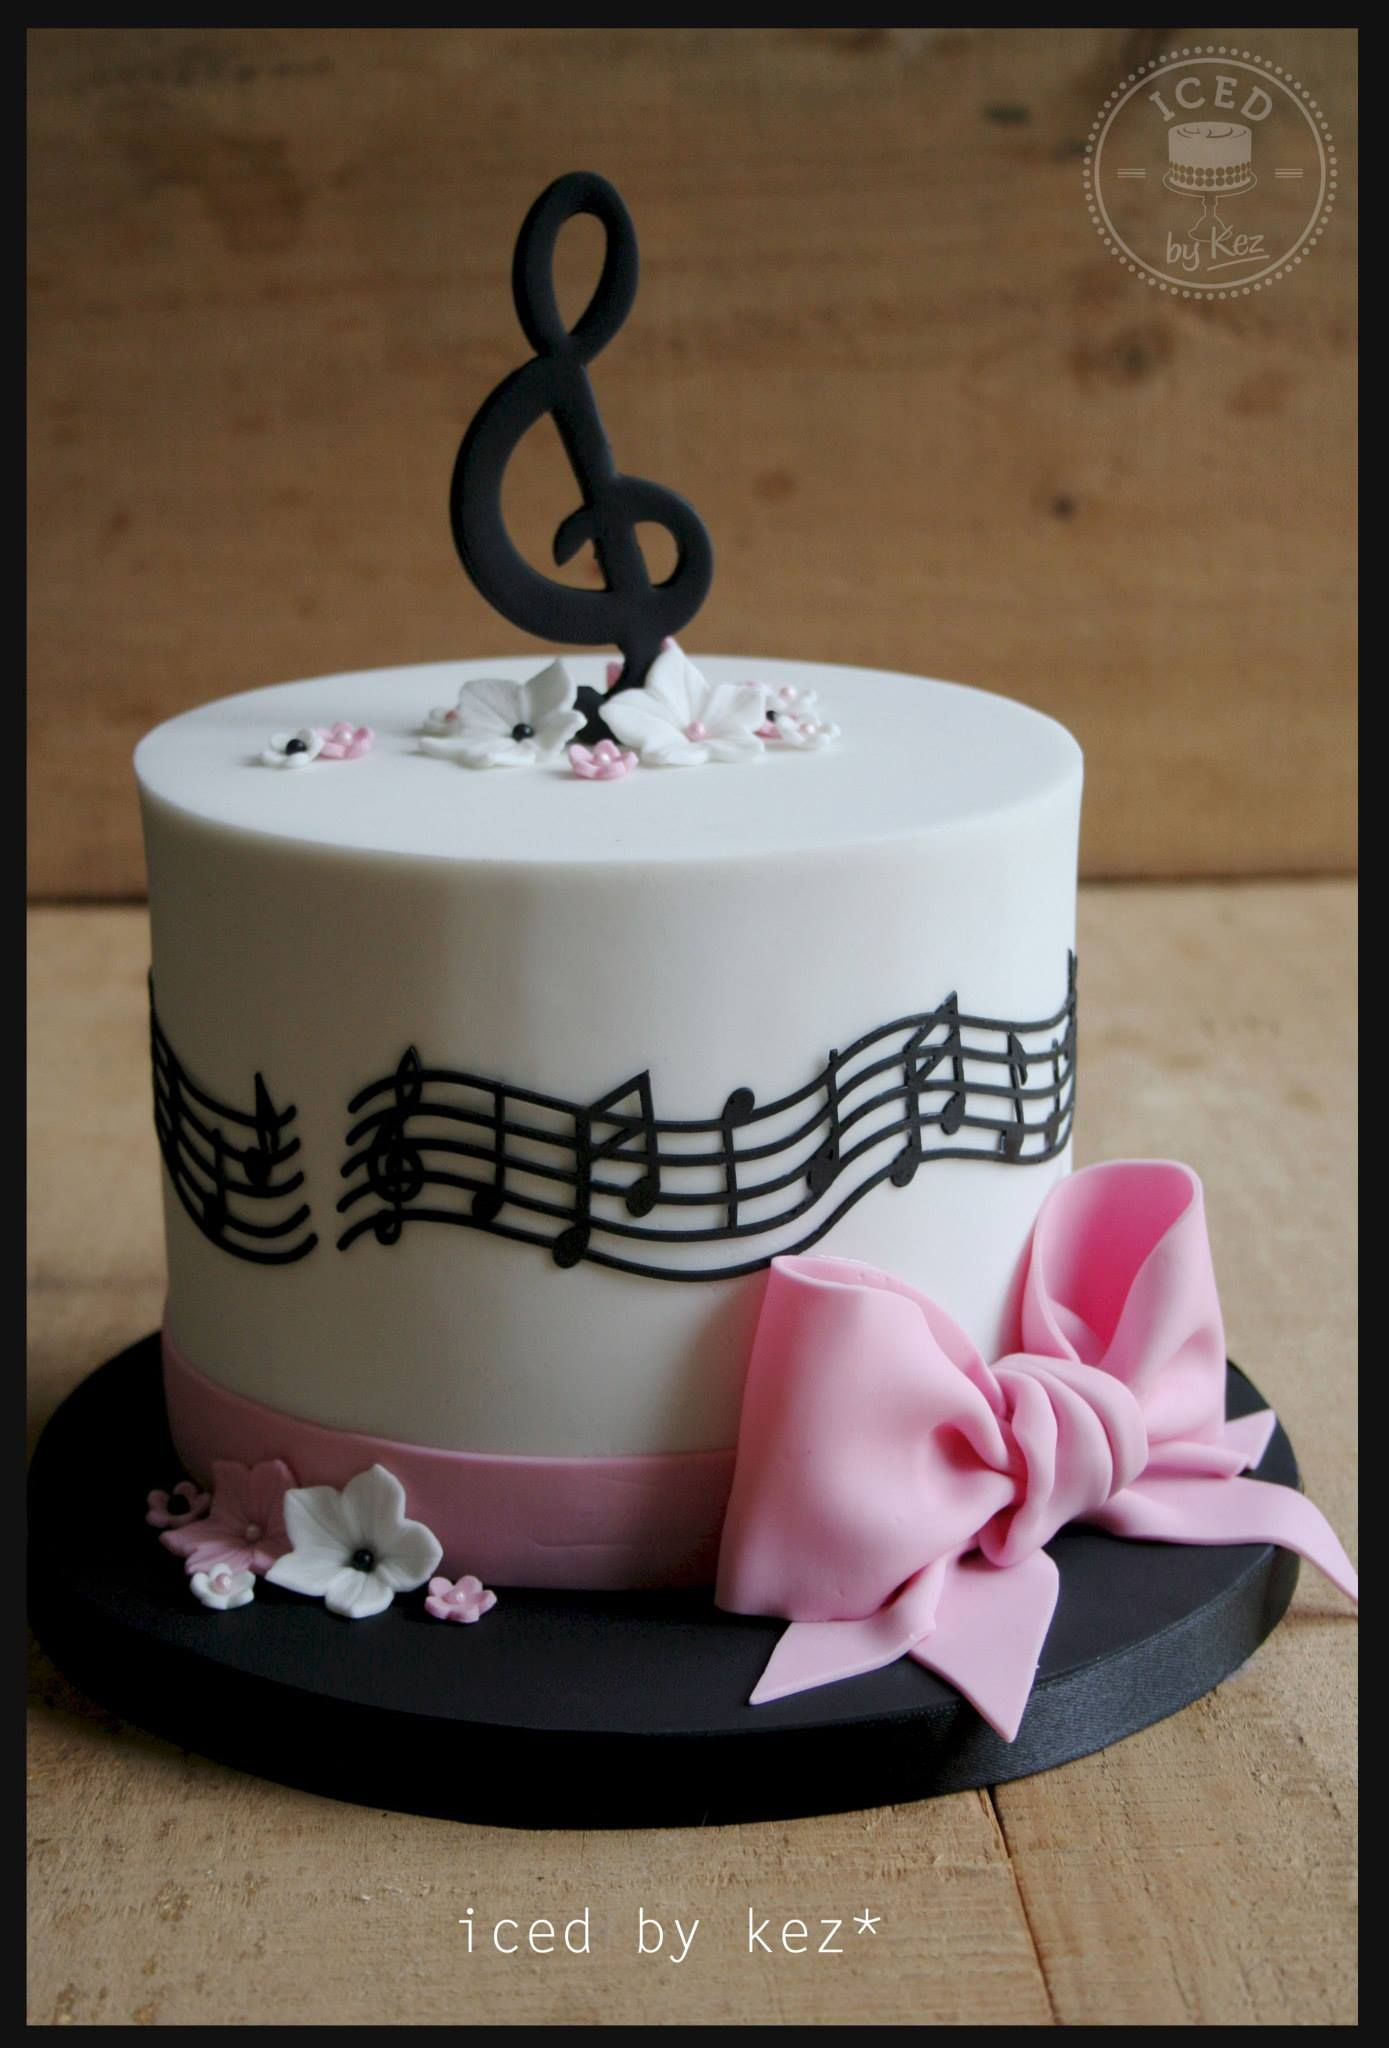 Cool Iced By Kez Music Cakes Music Themed Cakes Music Birthday Cakes Funny Birthday Cards Online Alyptdamsfinfo